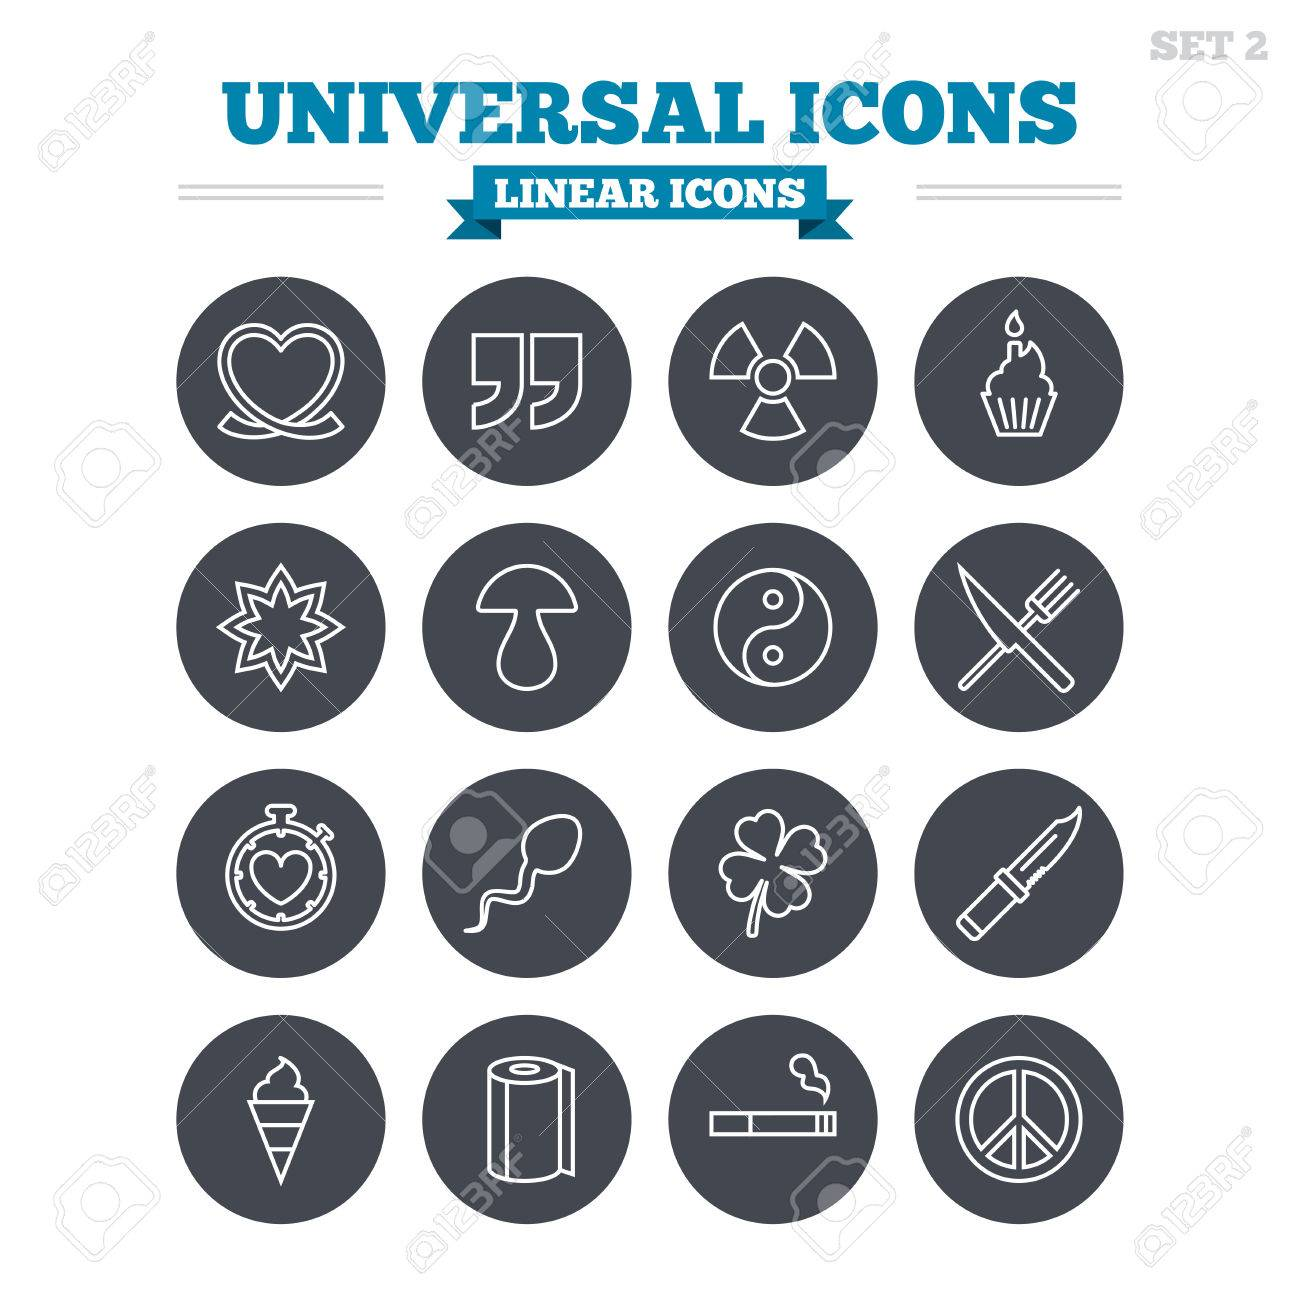 Universal Linear Icons Set Quotes Ribbon Heart And Cake Clover